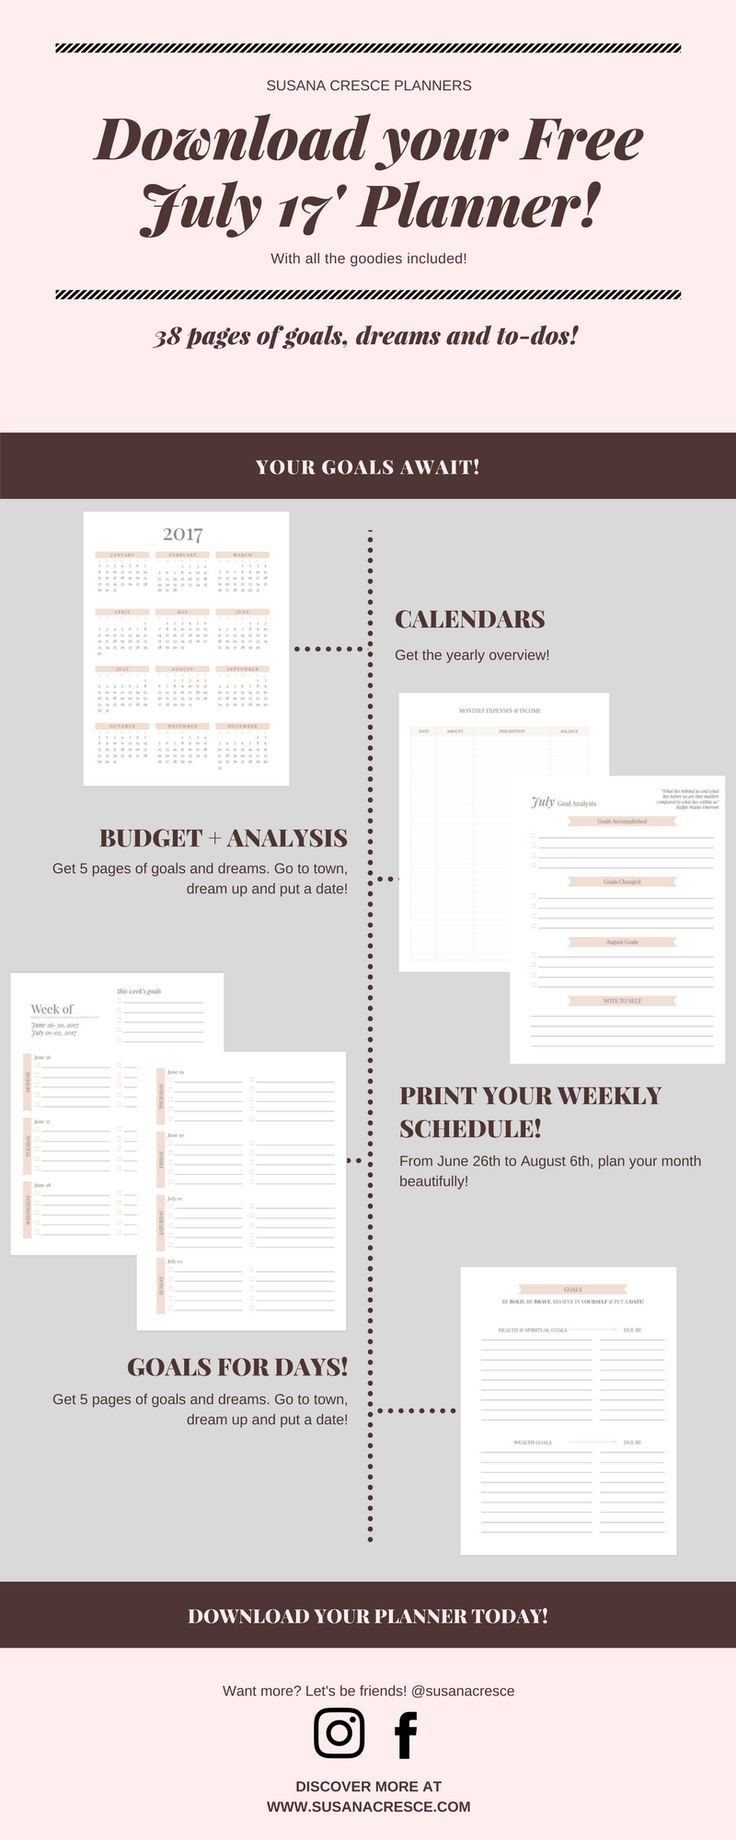 Grab this free downloadable, and get started right away with your Susana Cresce Planner! Test the goals pages, the weekly schedule and much more {newsletter subscription required}